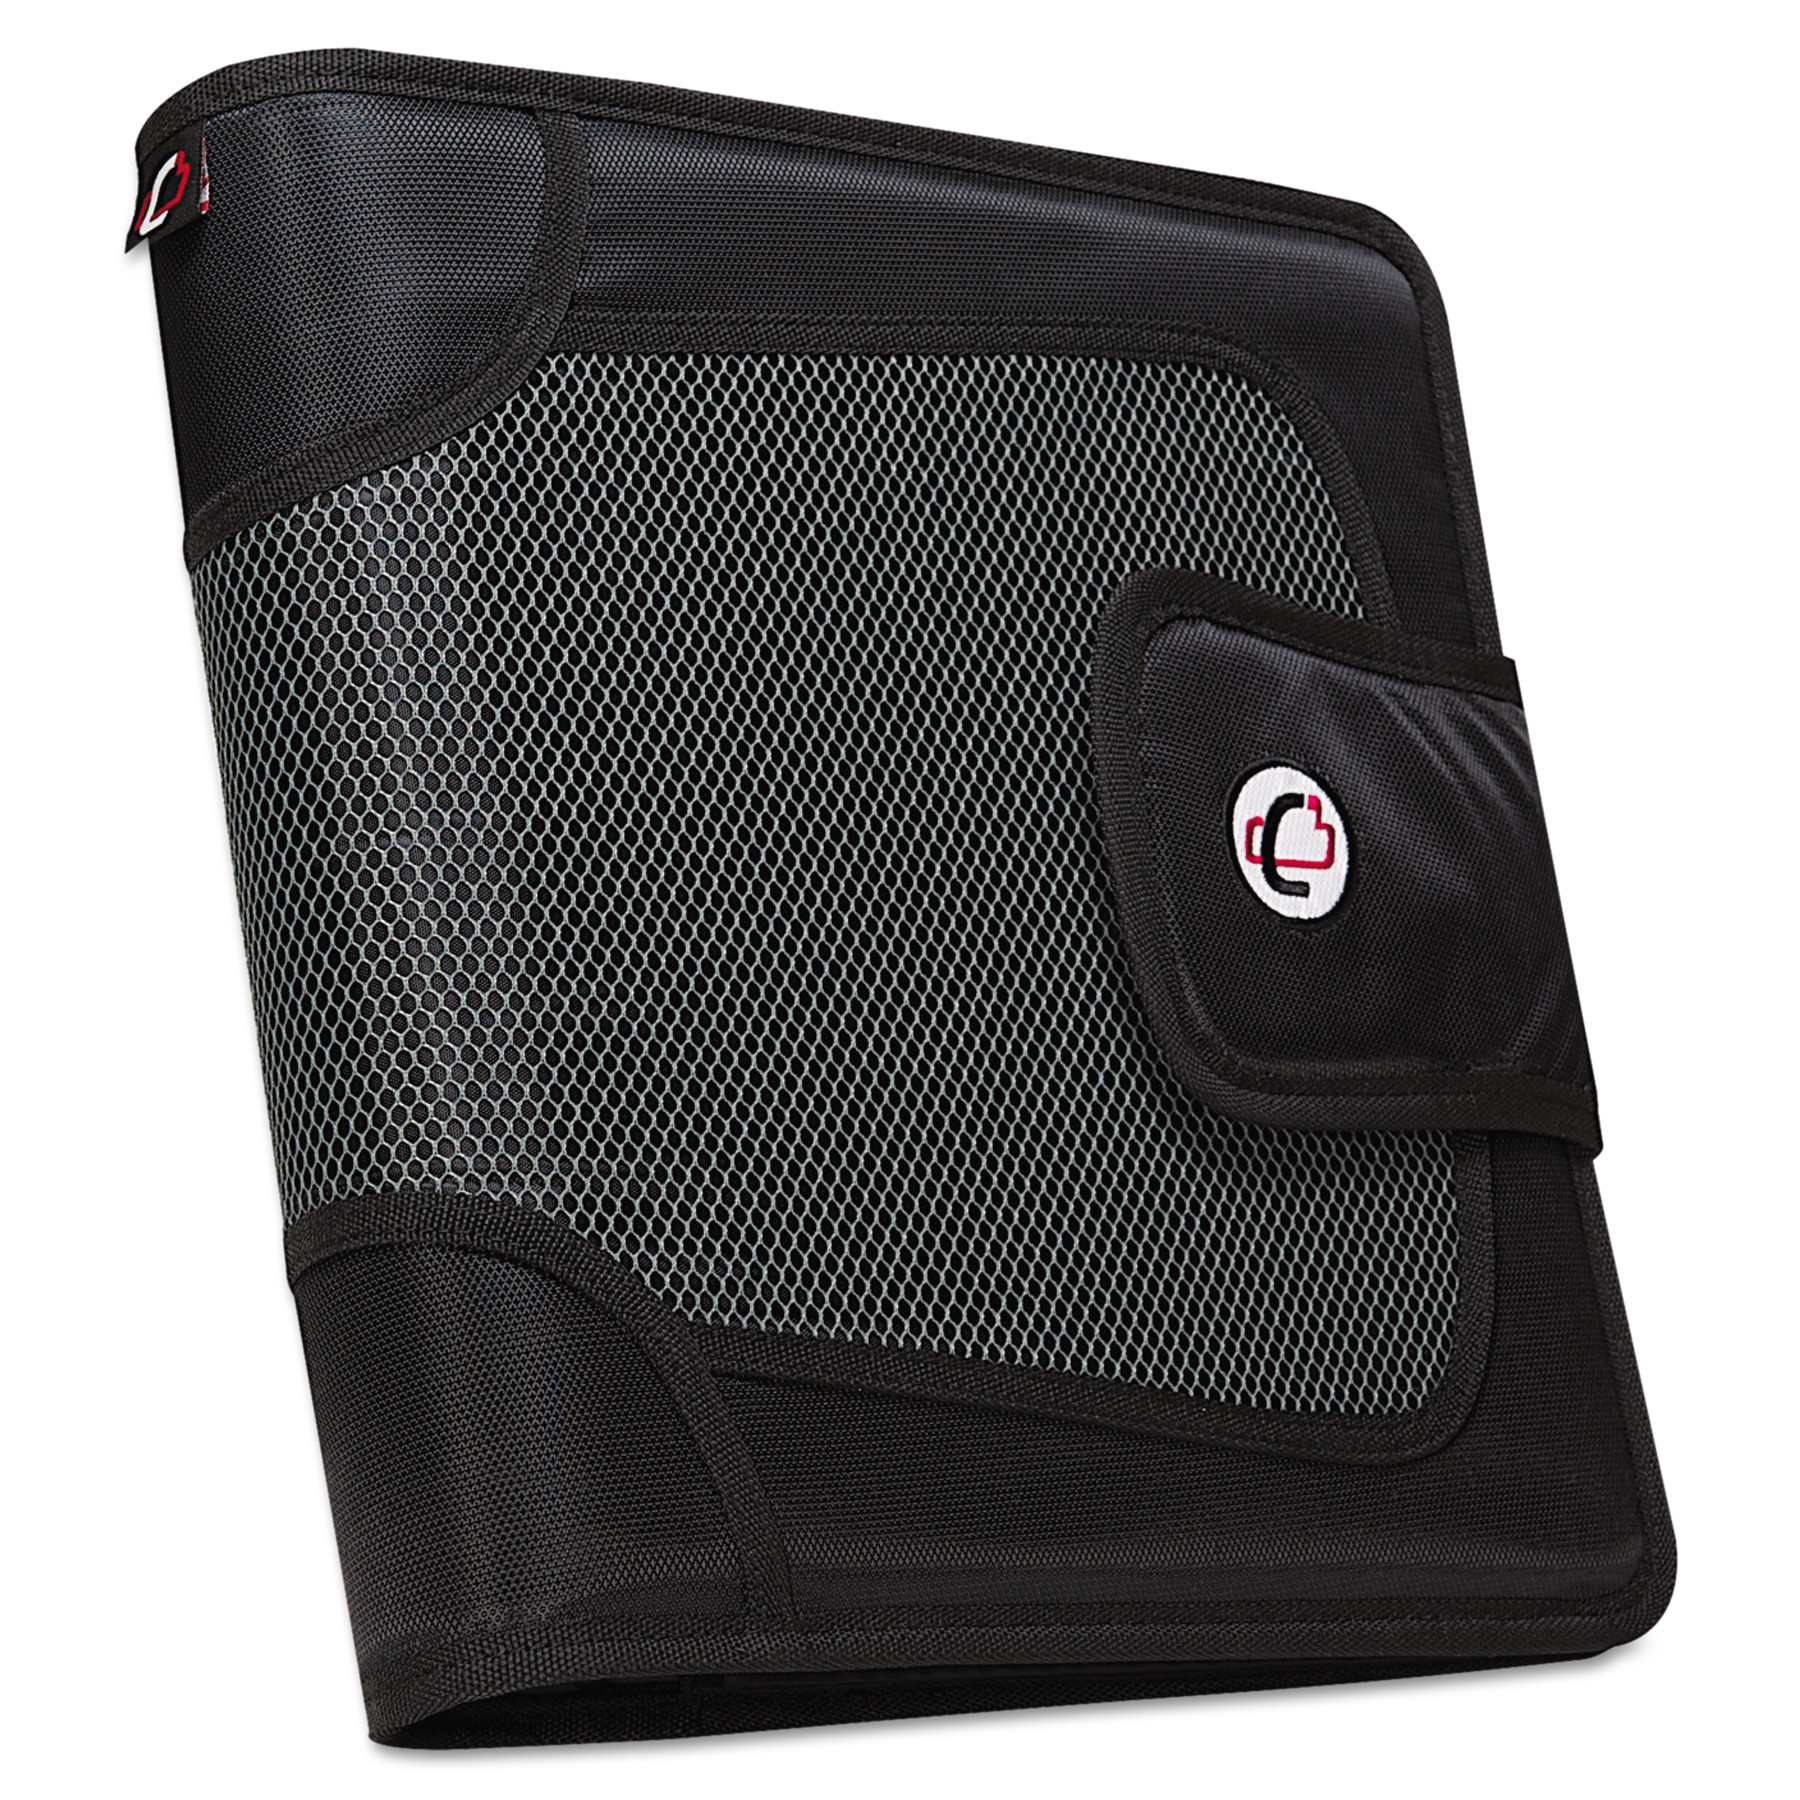 "Caseit 2"" 3 Ring Binder with Zippered Pencil Pocket and File Folder"